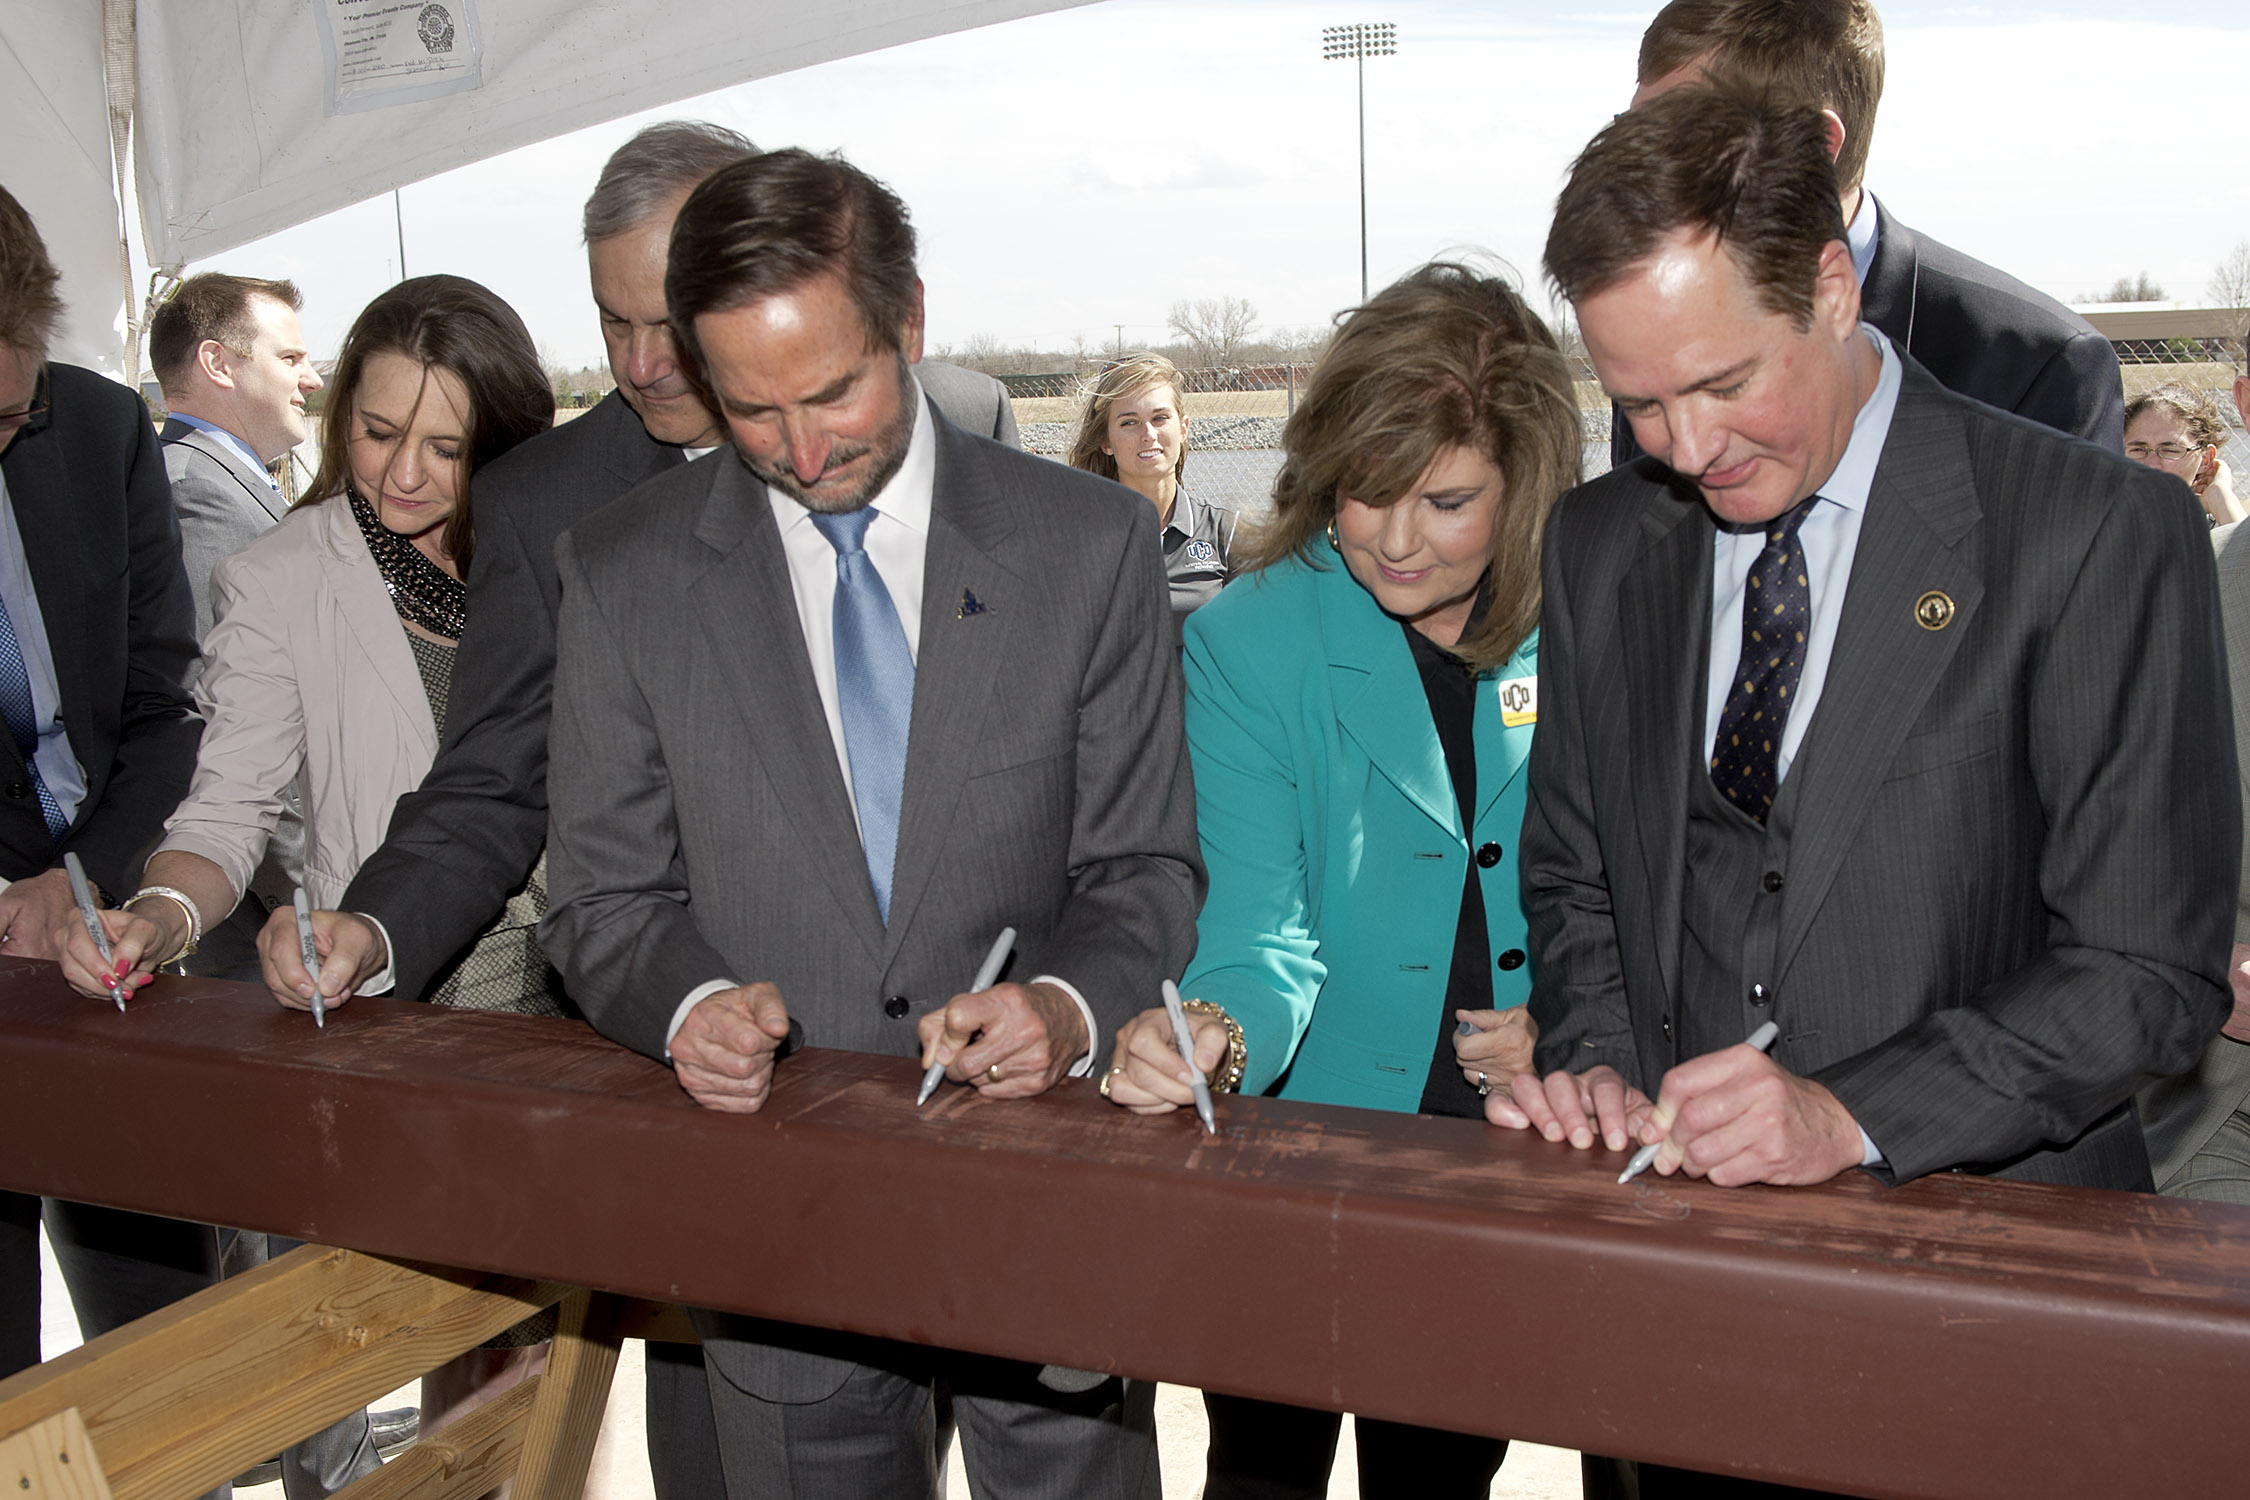 UCO President Don Betz, First Lady Suzanne Betz and RUSO Regent Richard Ogden sign a beam that will be used in the construction of the CHK|Central Boathouse during a ceremony to celebrate the construction of the boathouse on Thursday, March 27, at the Oklahoma River.